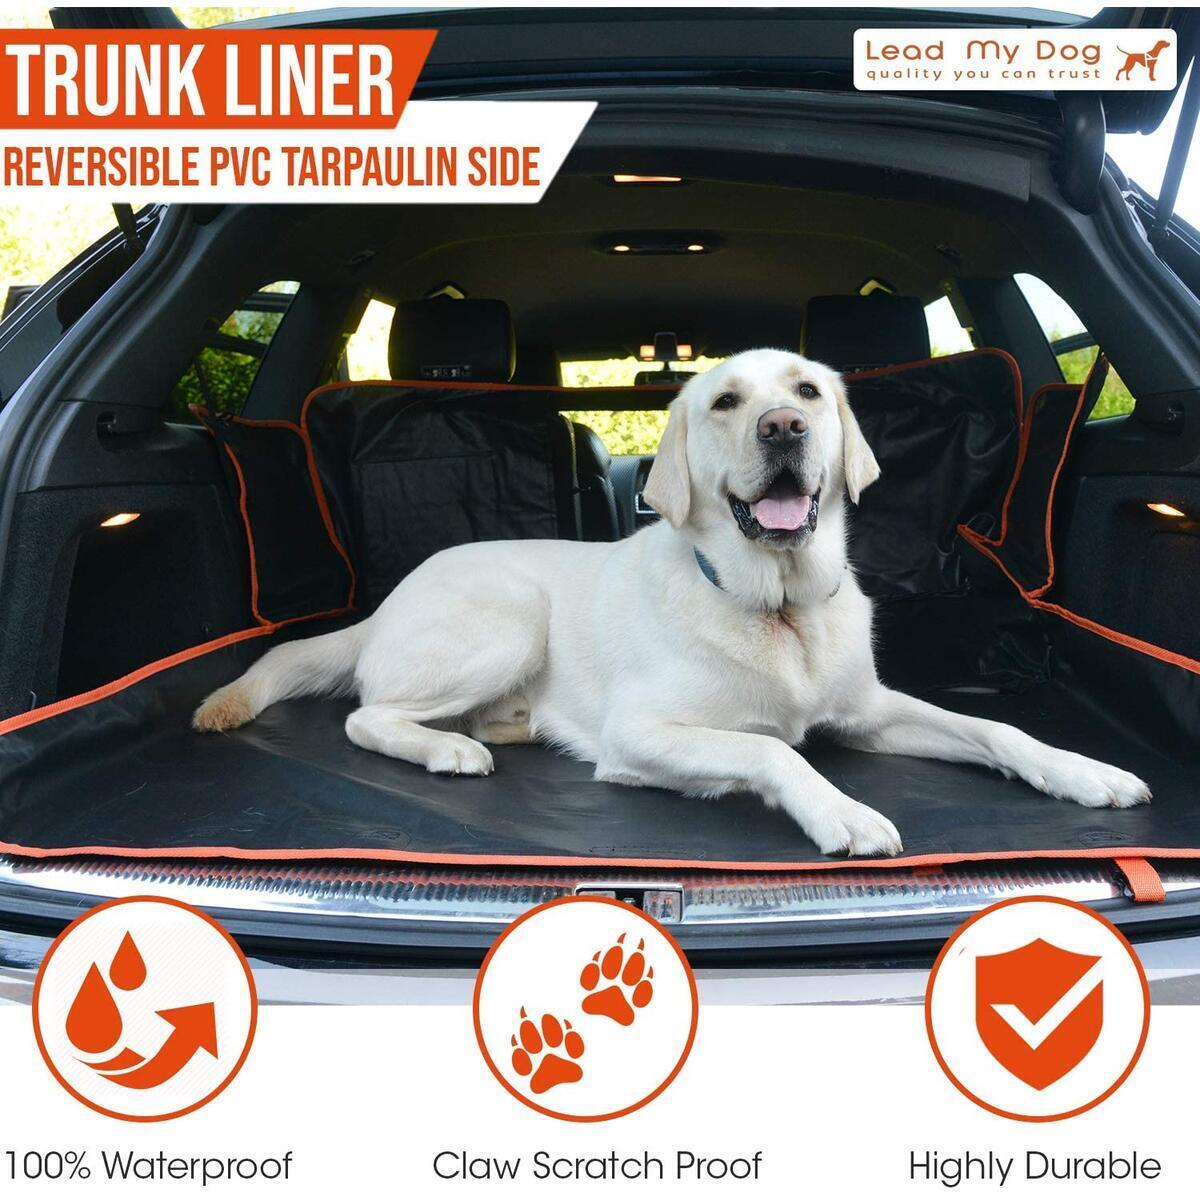 Dog Car Seat Cover / Pet Seat Cover for Cars, SUVs, Station Wagons